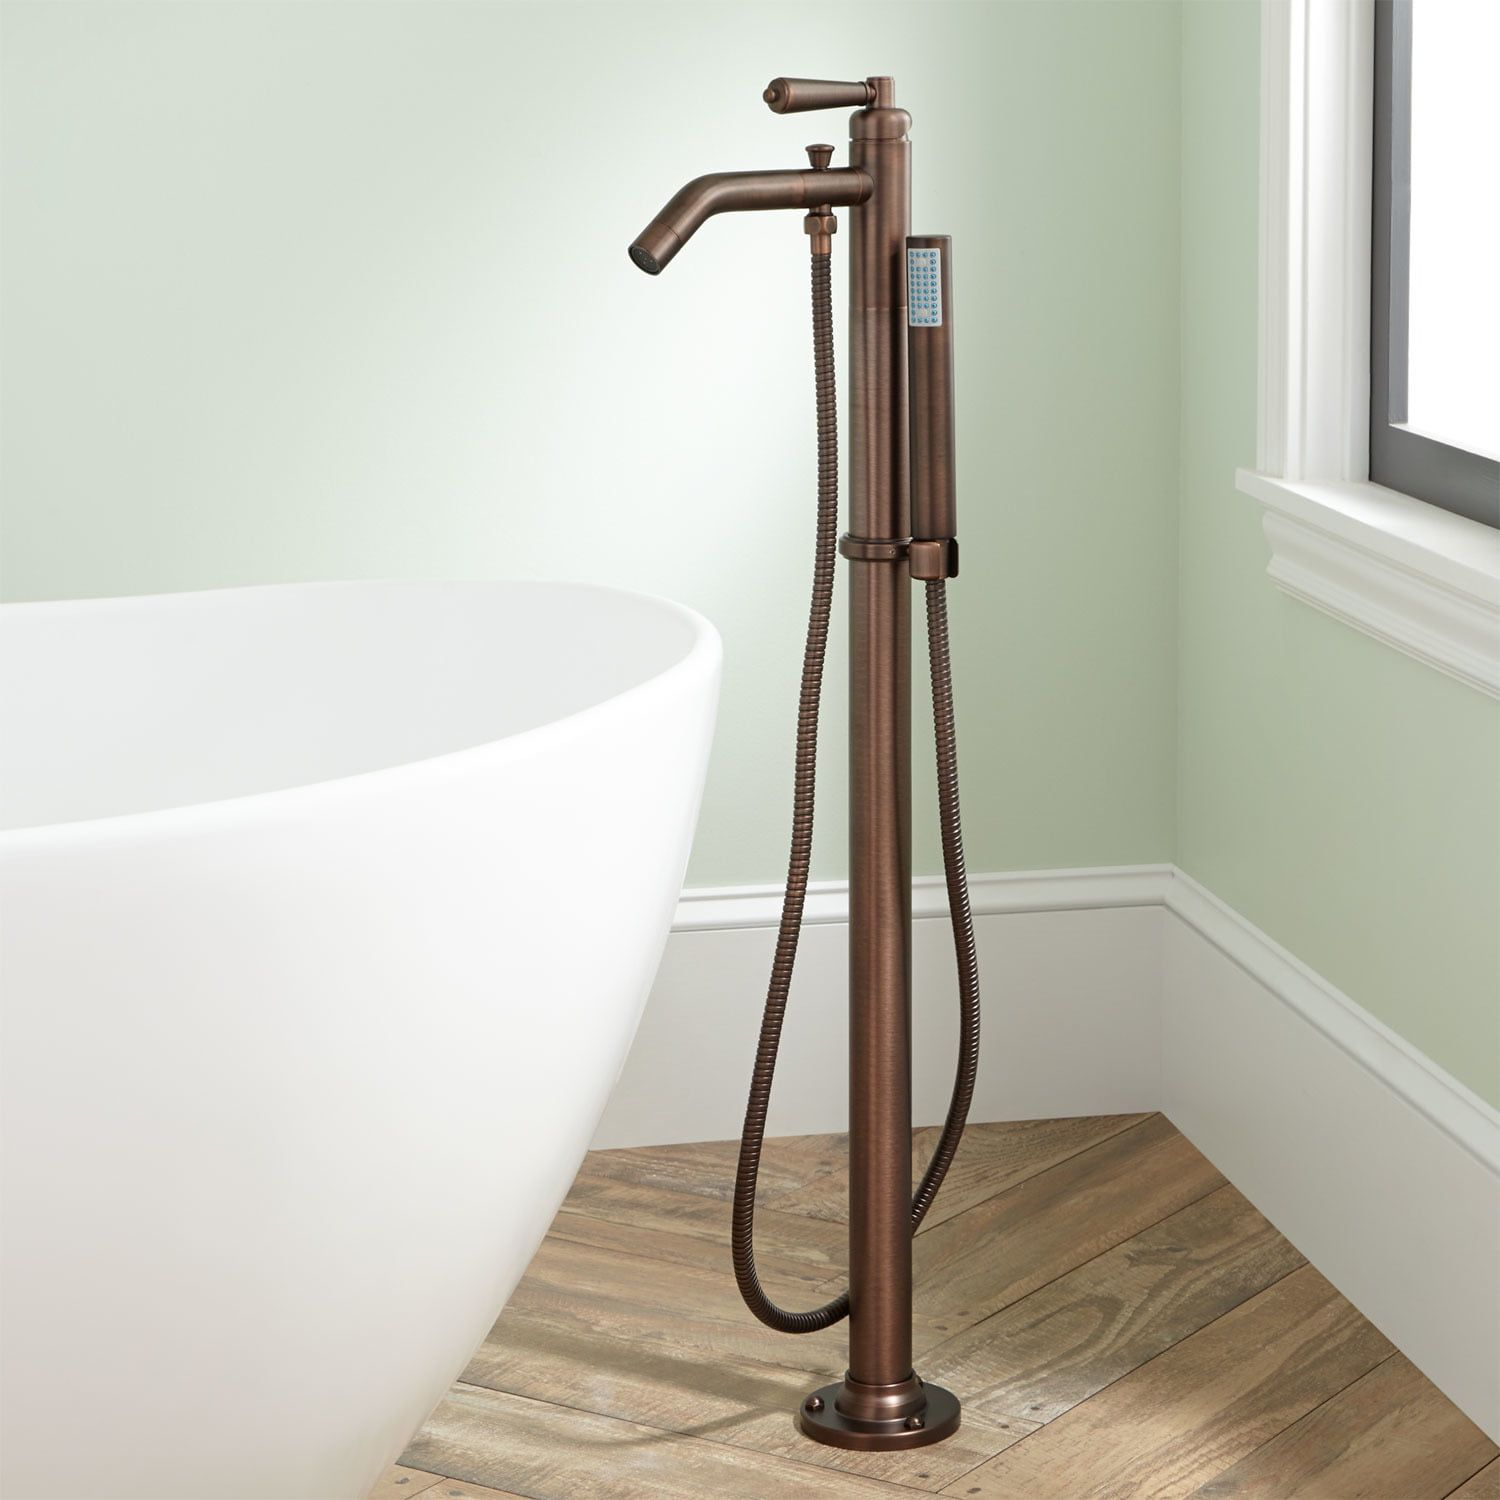 Napier Freestanding Tub Faucet And Hand Shower In Oil Rubbed